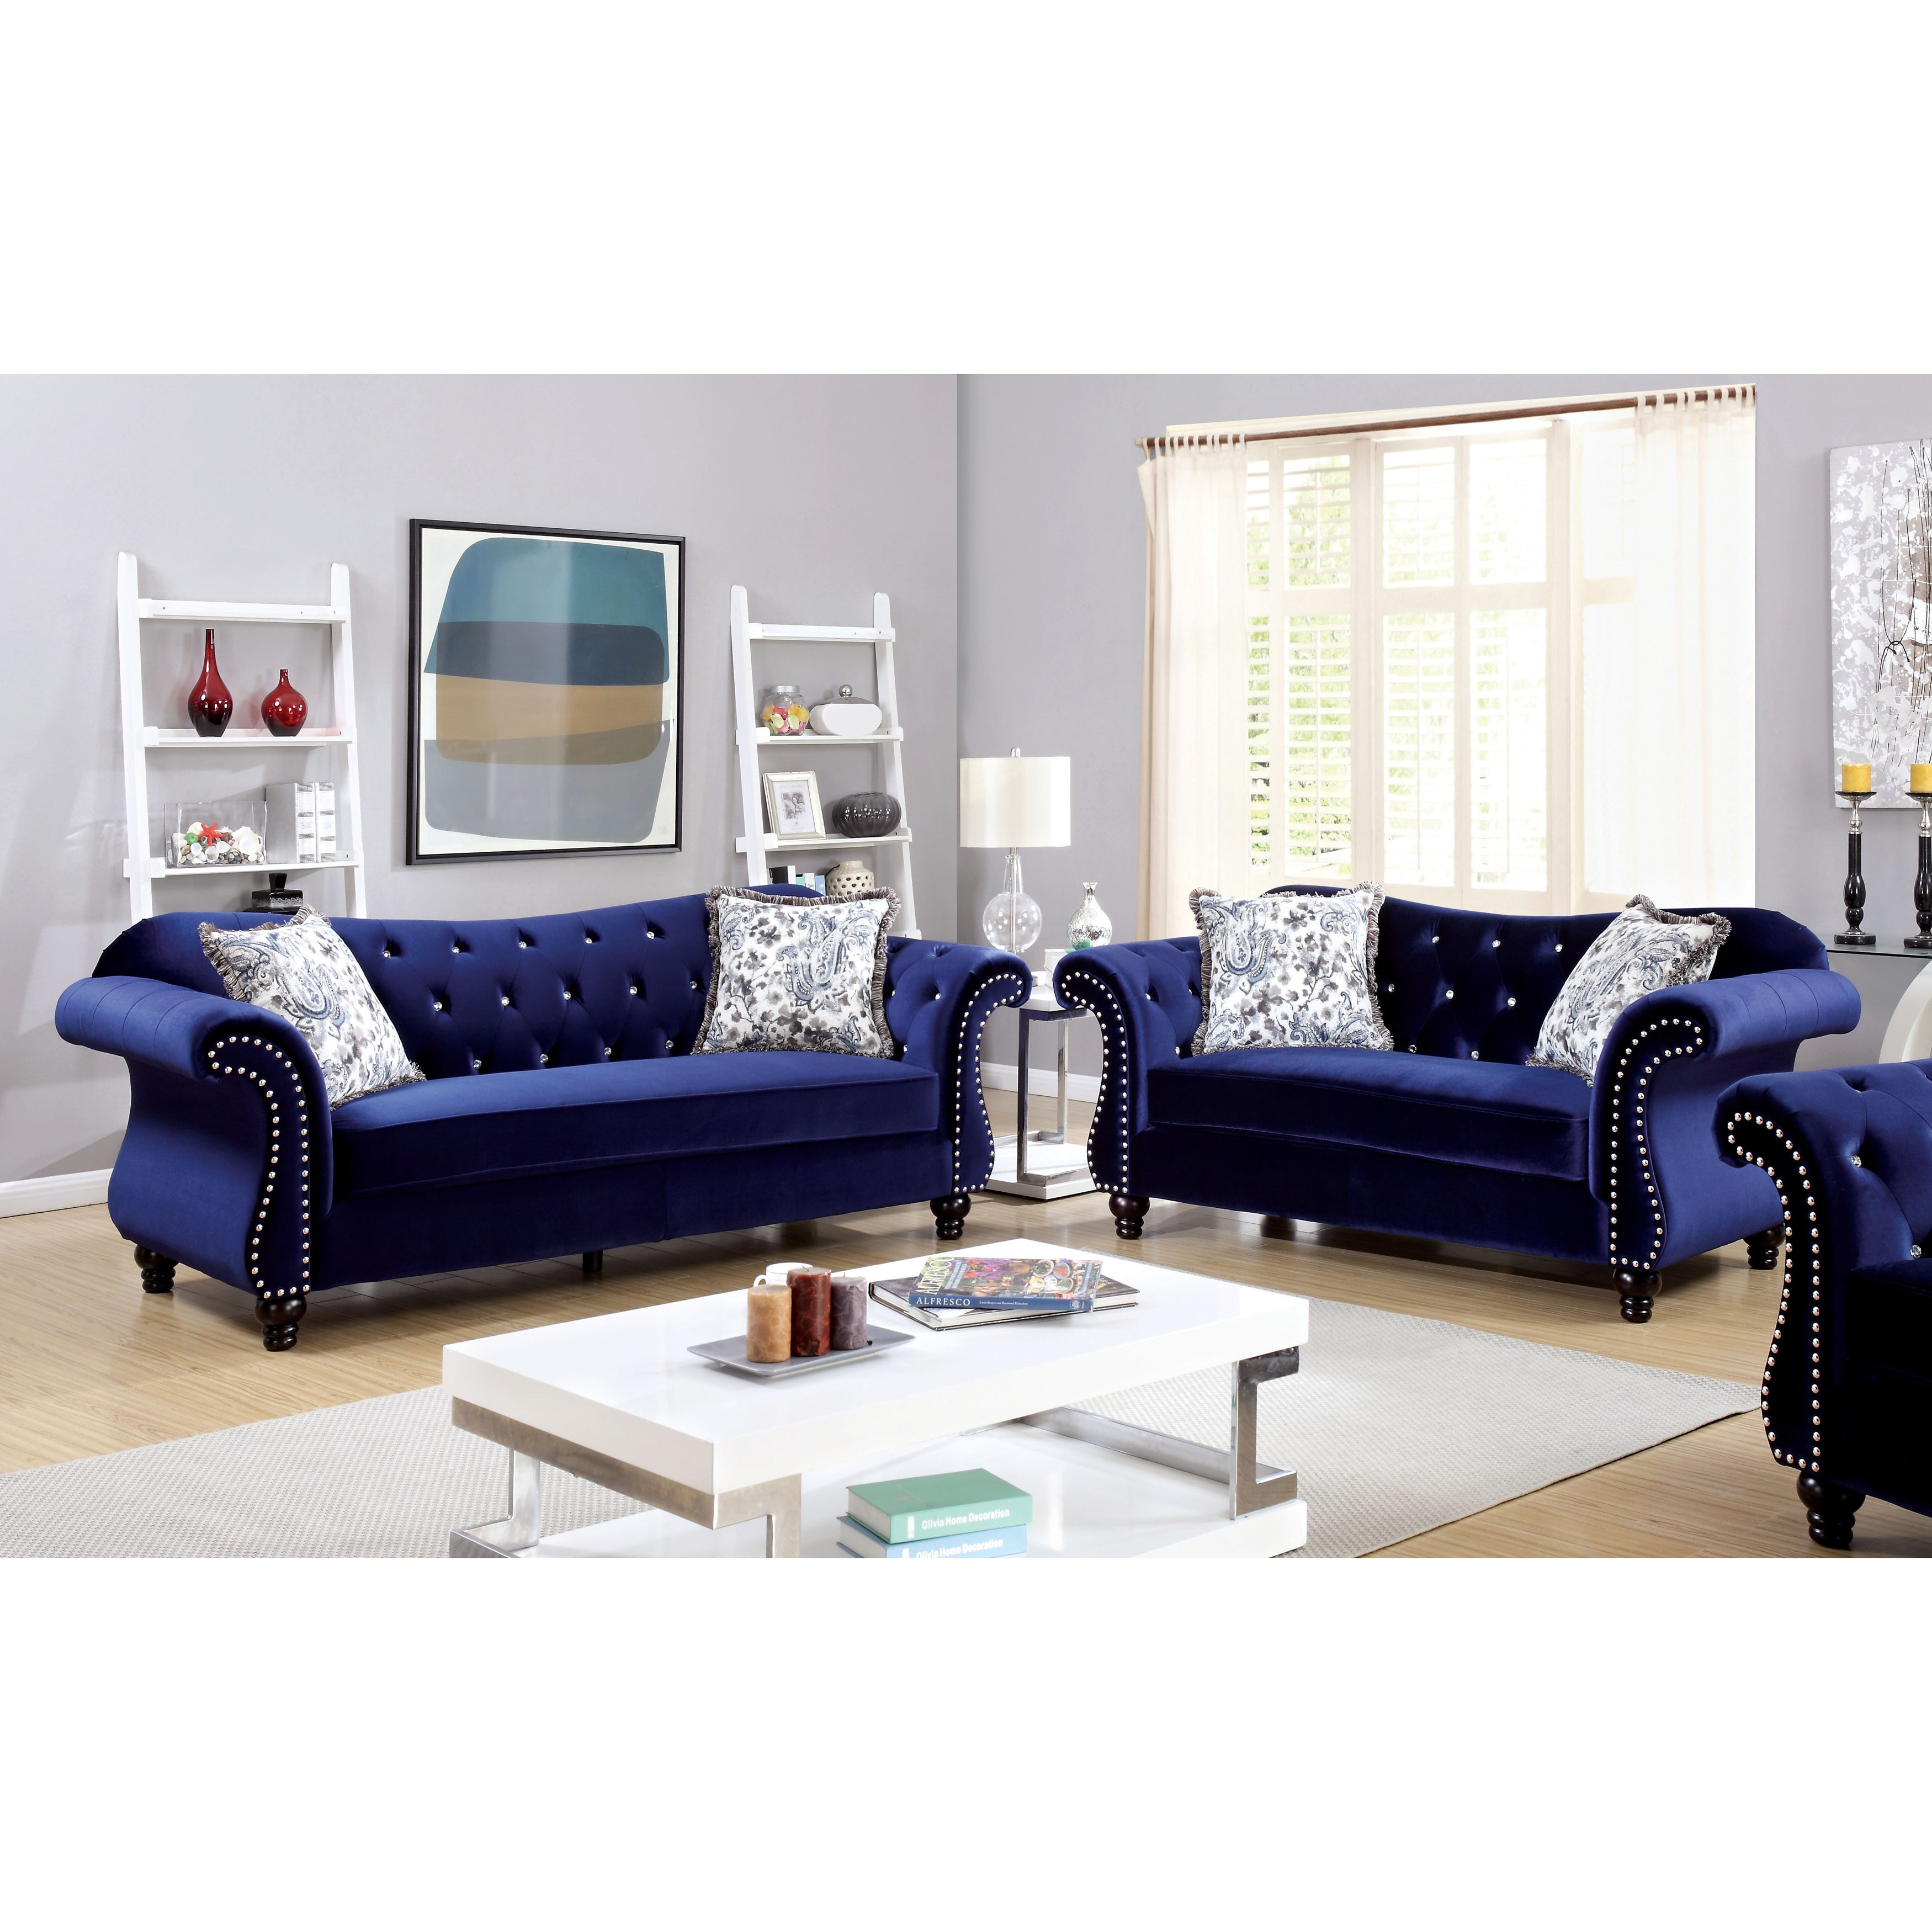 Furniture of America Dessie Traditional 3-piece Tufted Sofa Set ...